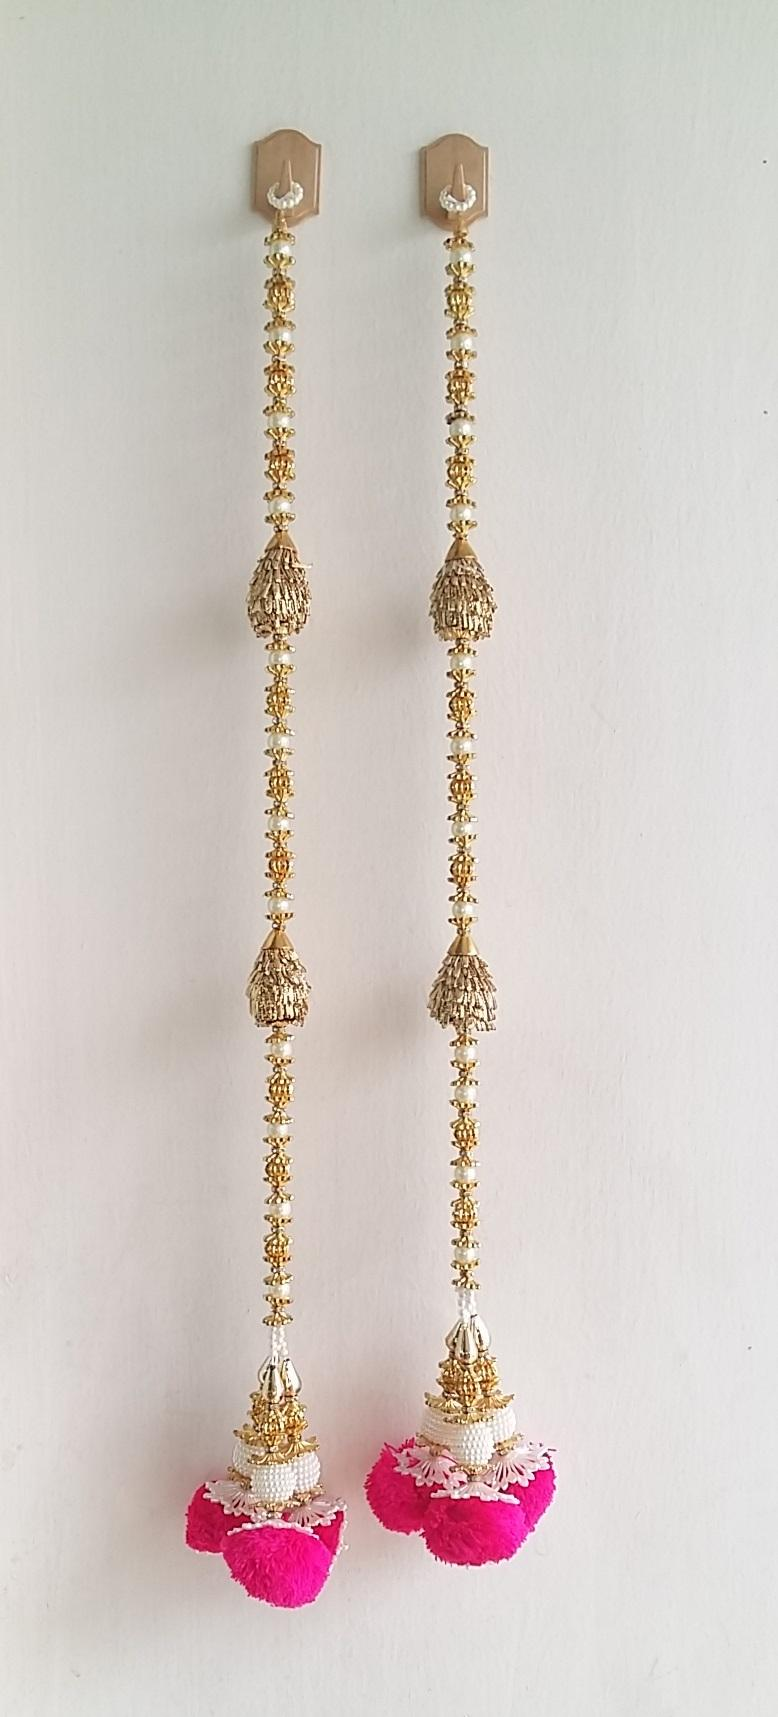 Door Hanging Toran Indian Decorative Hanging With Large Cream Pearls Golden Leaves & Pink Flower